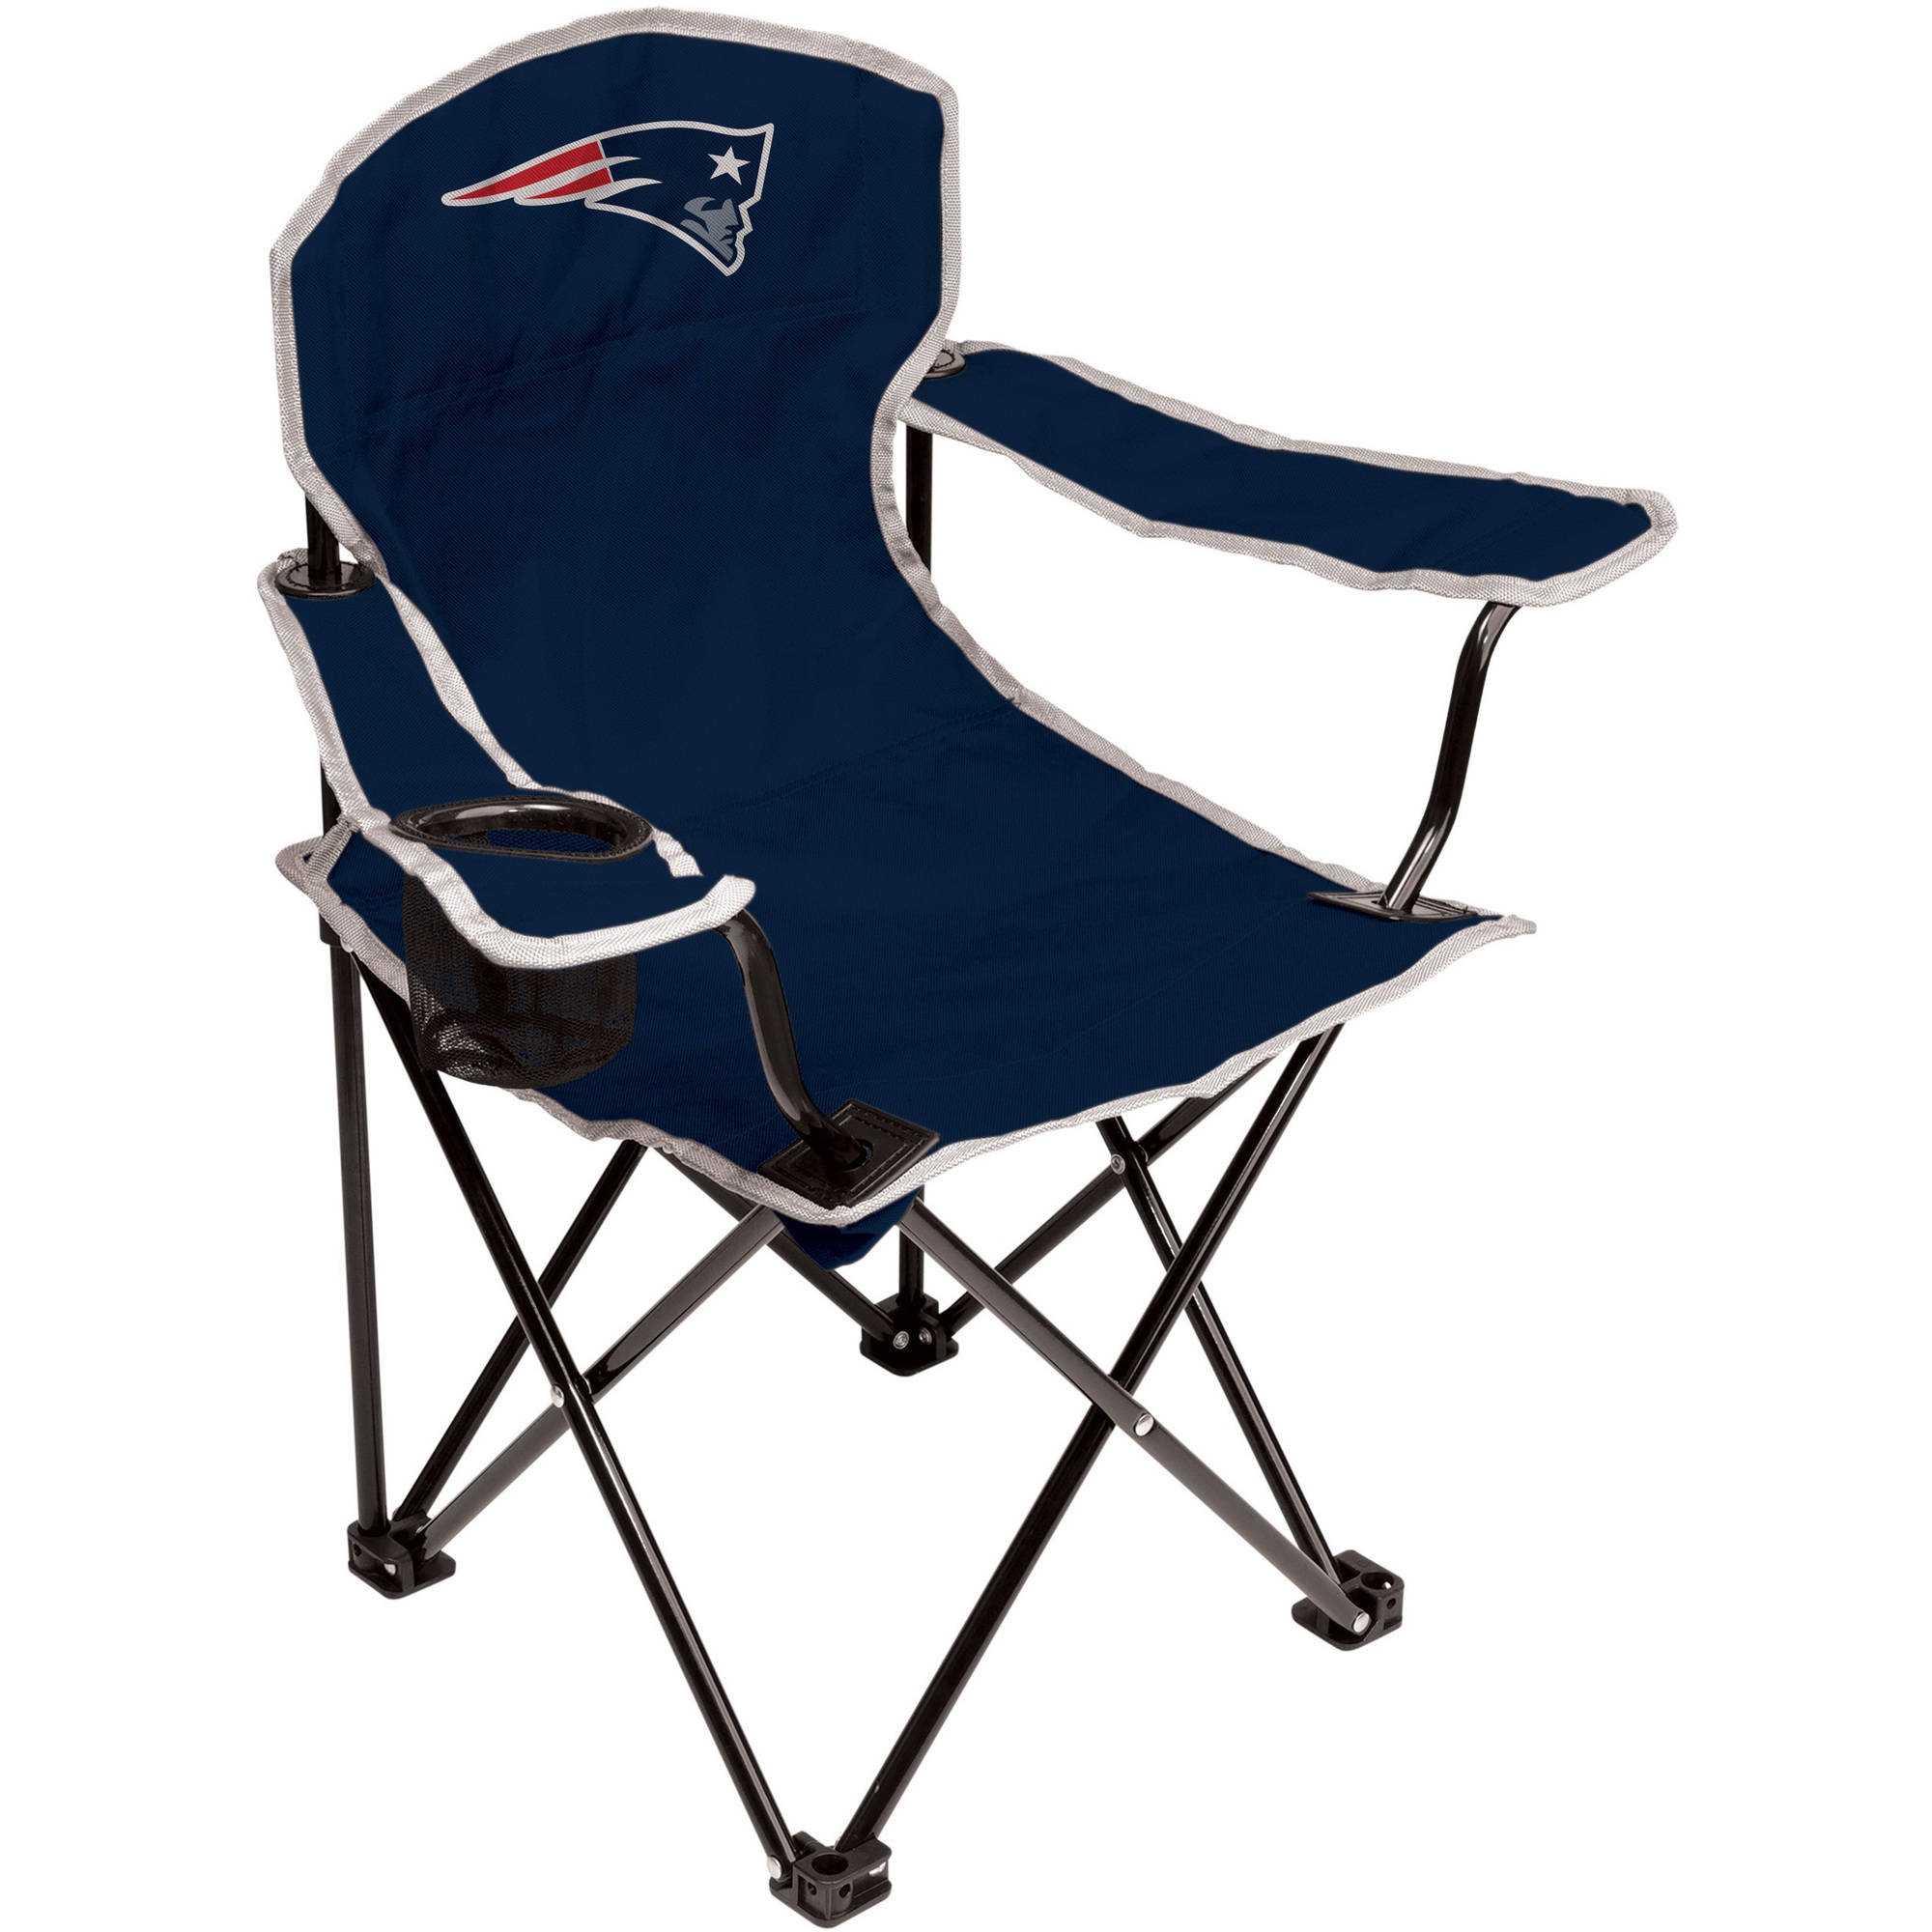 NFL New England Patriots Youth Size Tailgate Chair from Coleman by Rawlings